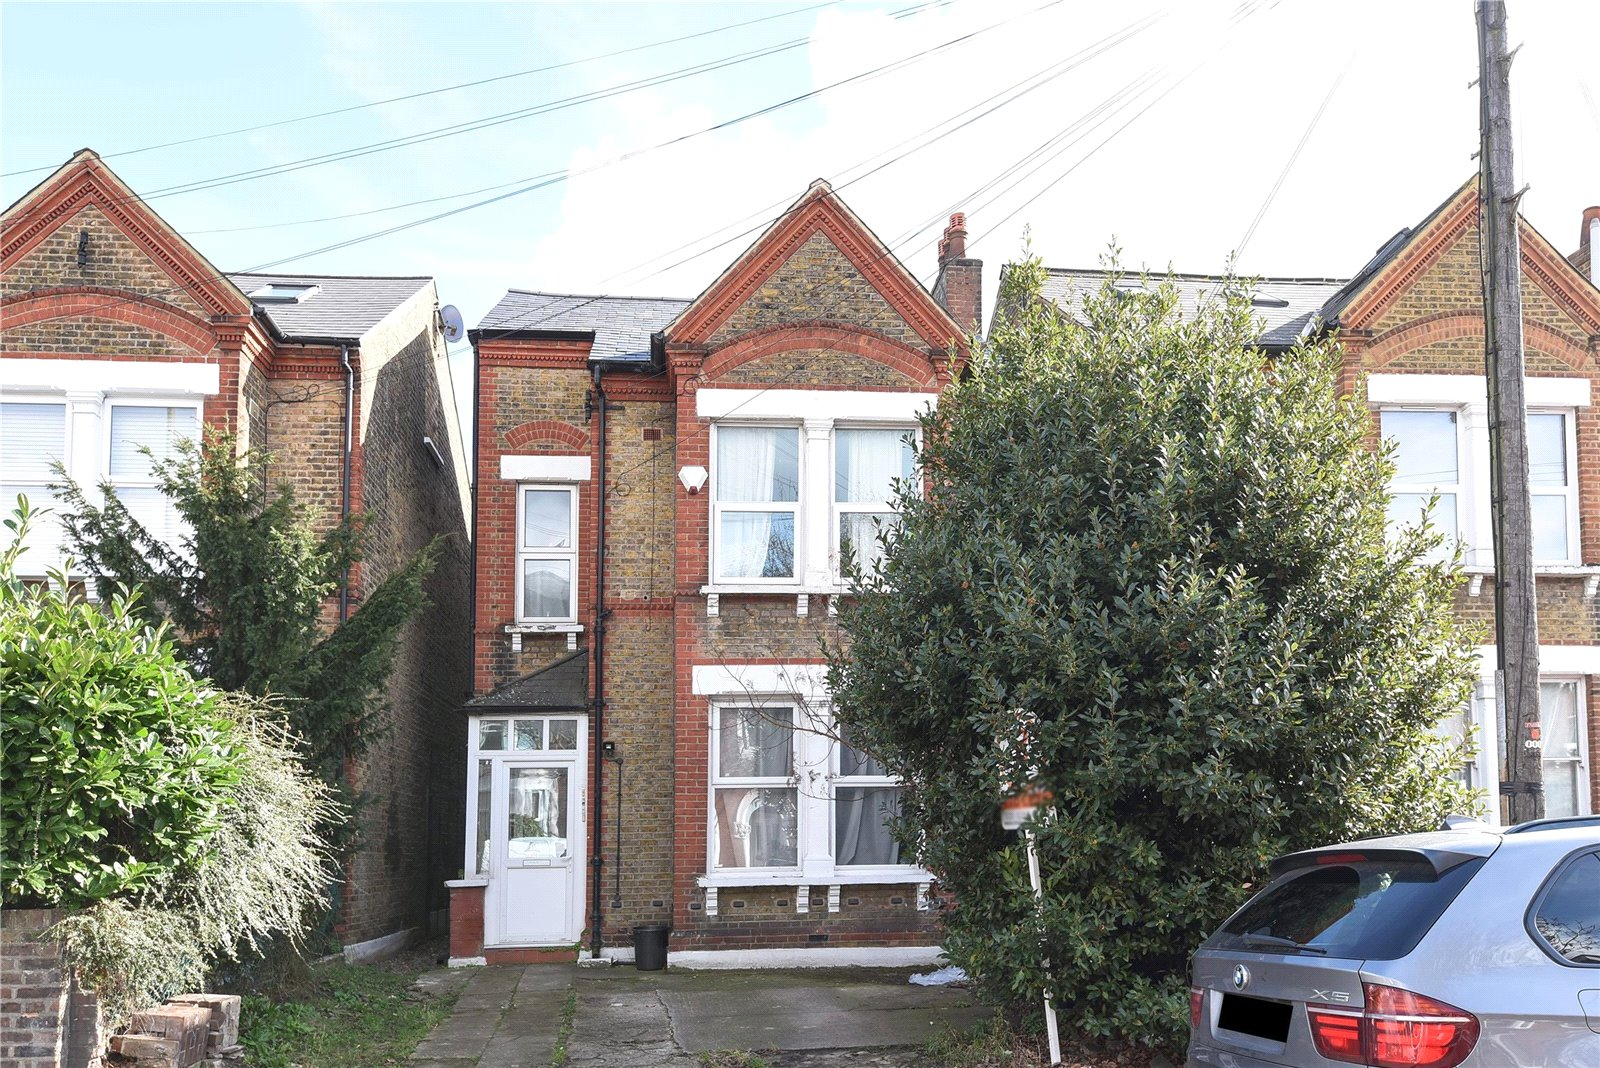 5 bed house for sale in Streatham 0